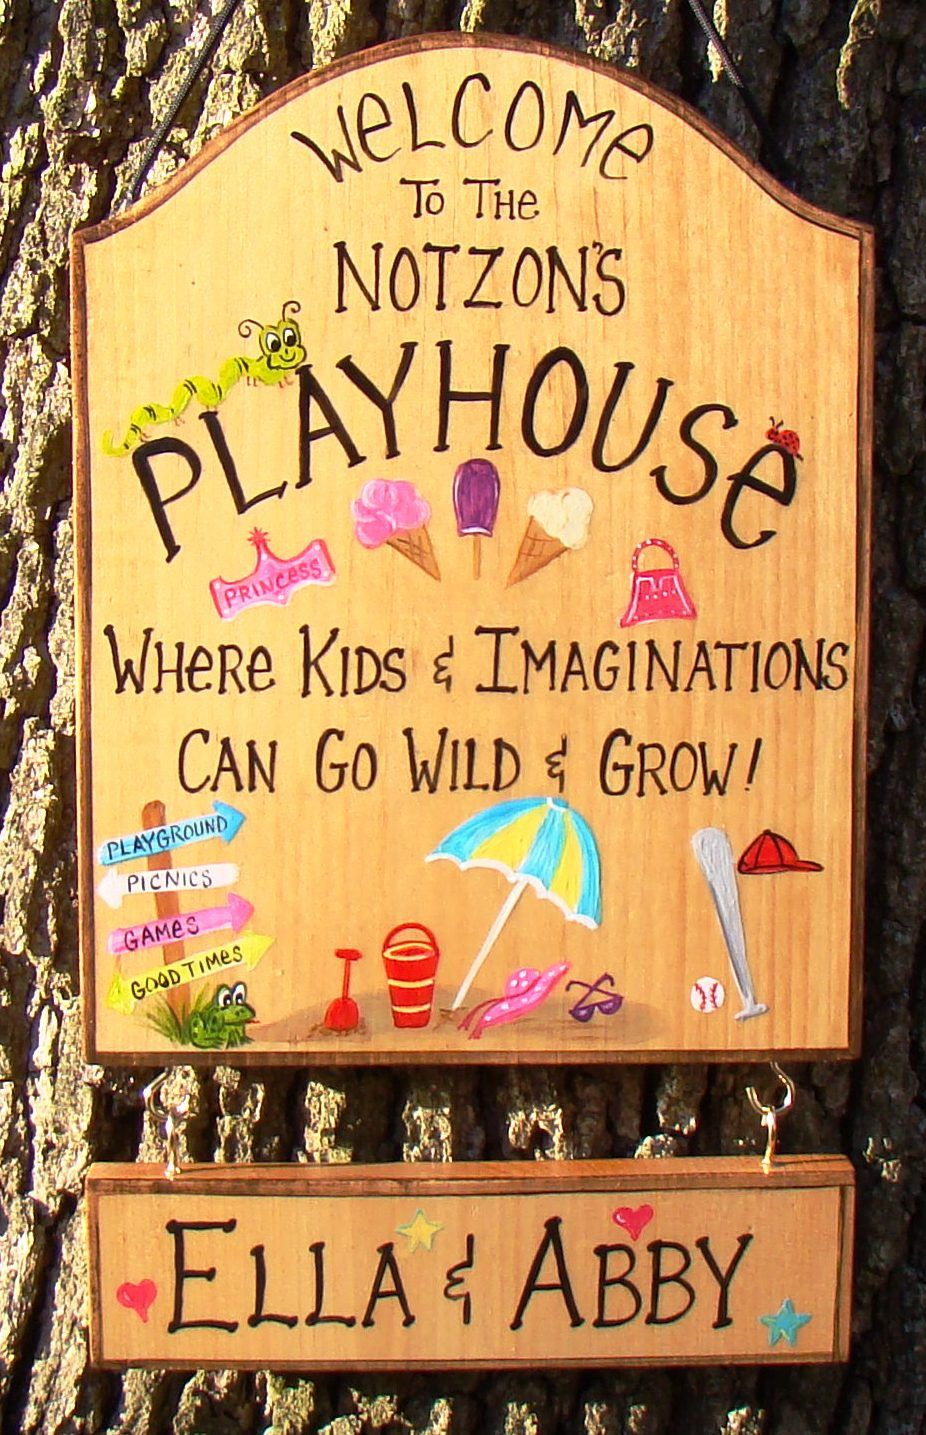 You can see the tree which this tree house castle clings to through - Custom Playhouse Sign For Kids Girls Boys Room Tree House Cabin Playground Camping Tent Personalized Names Etc Designs Can Be Changed